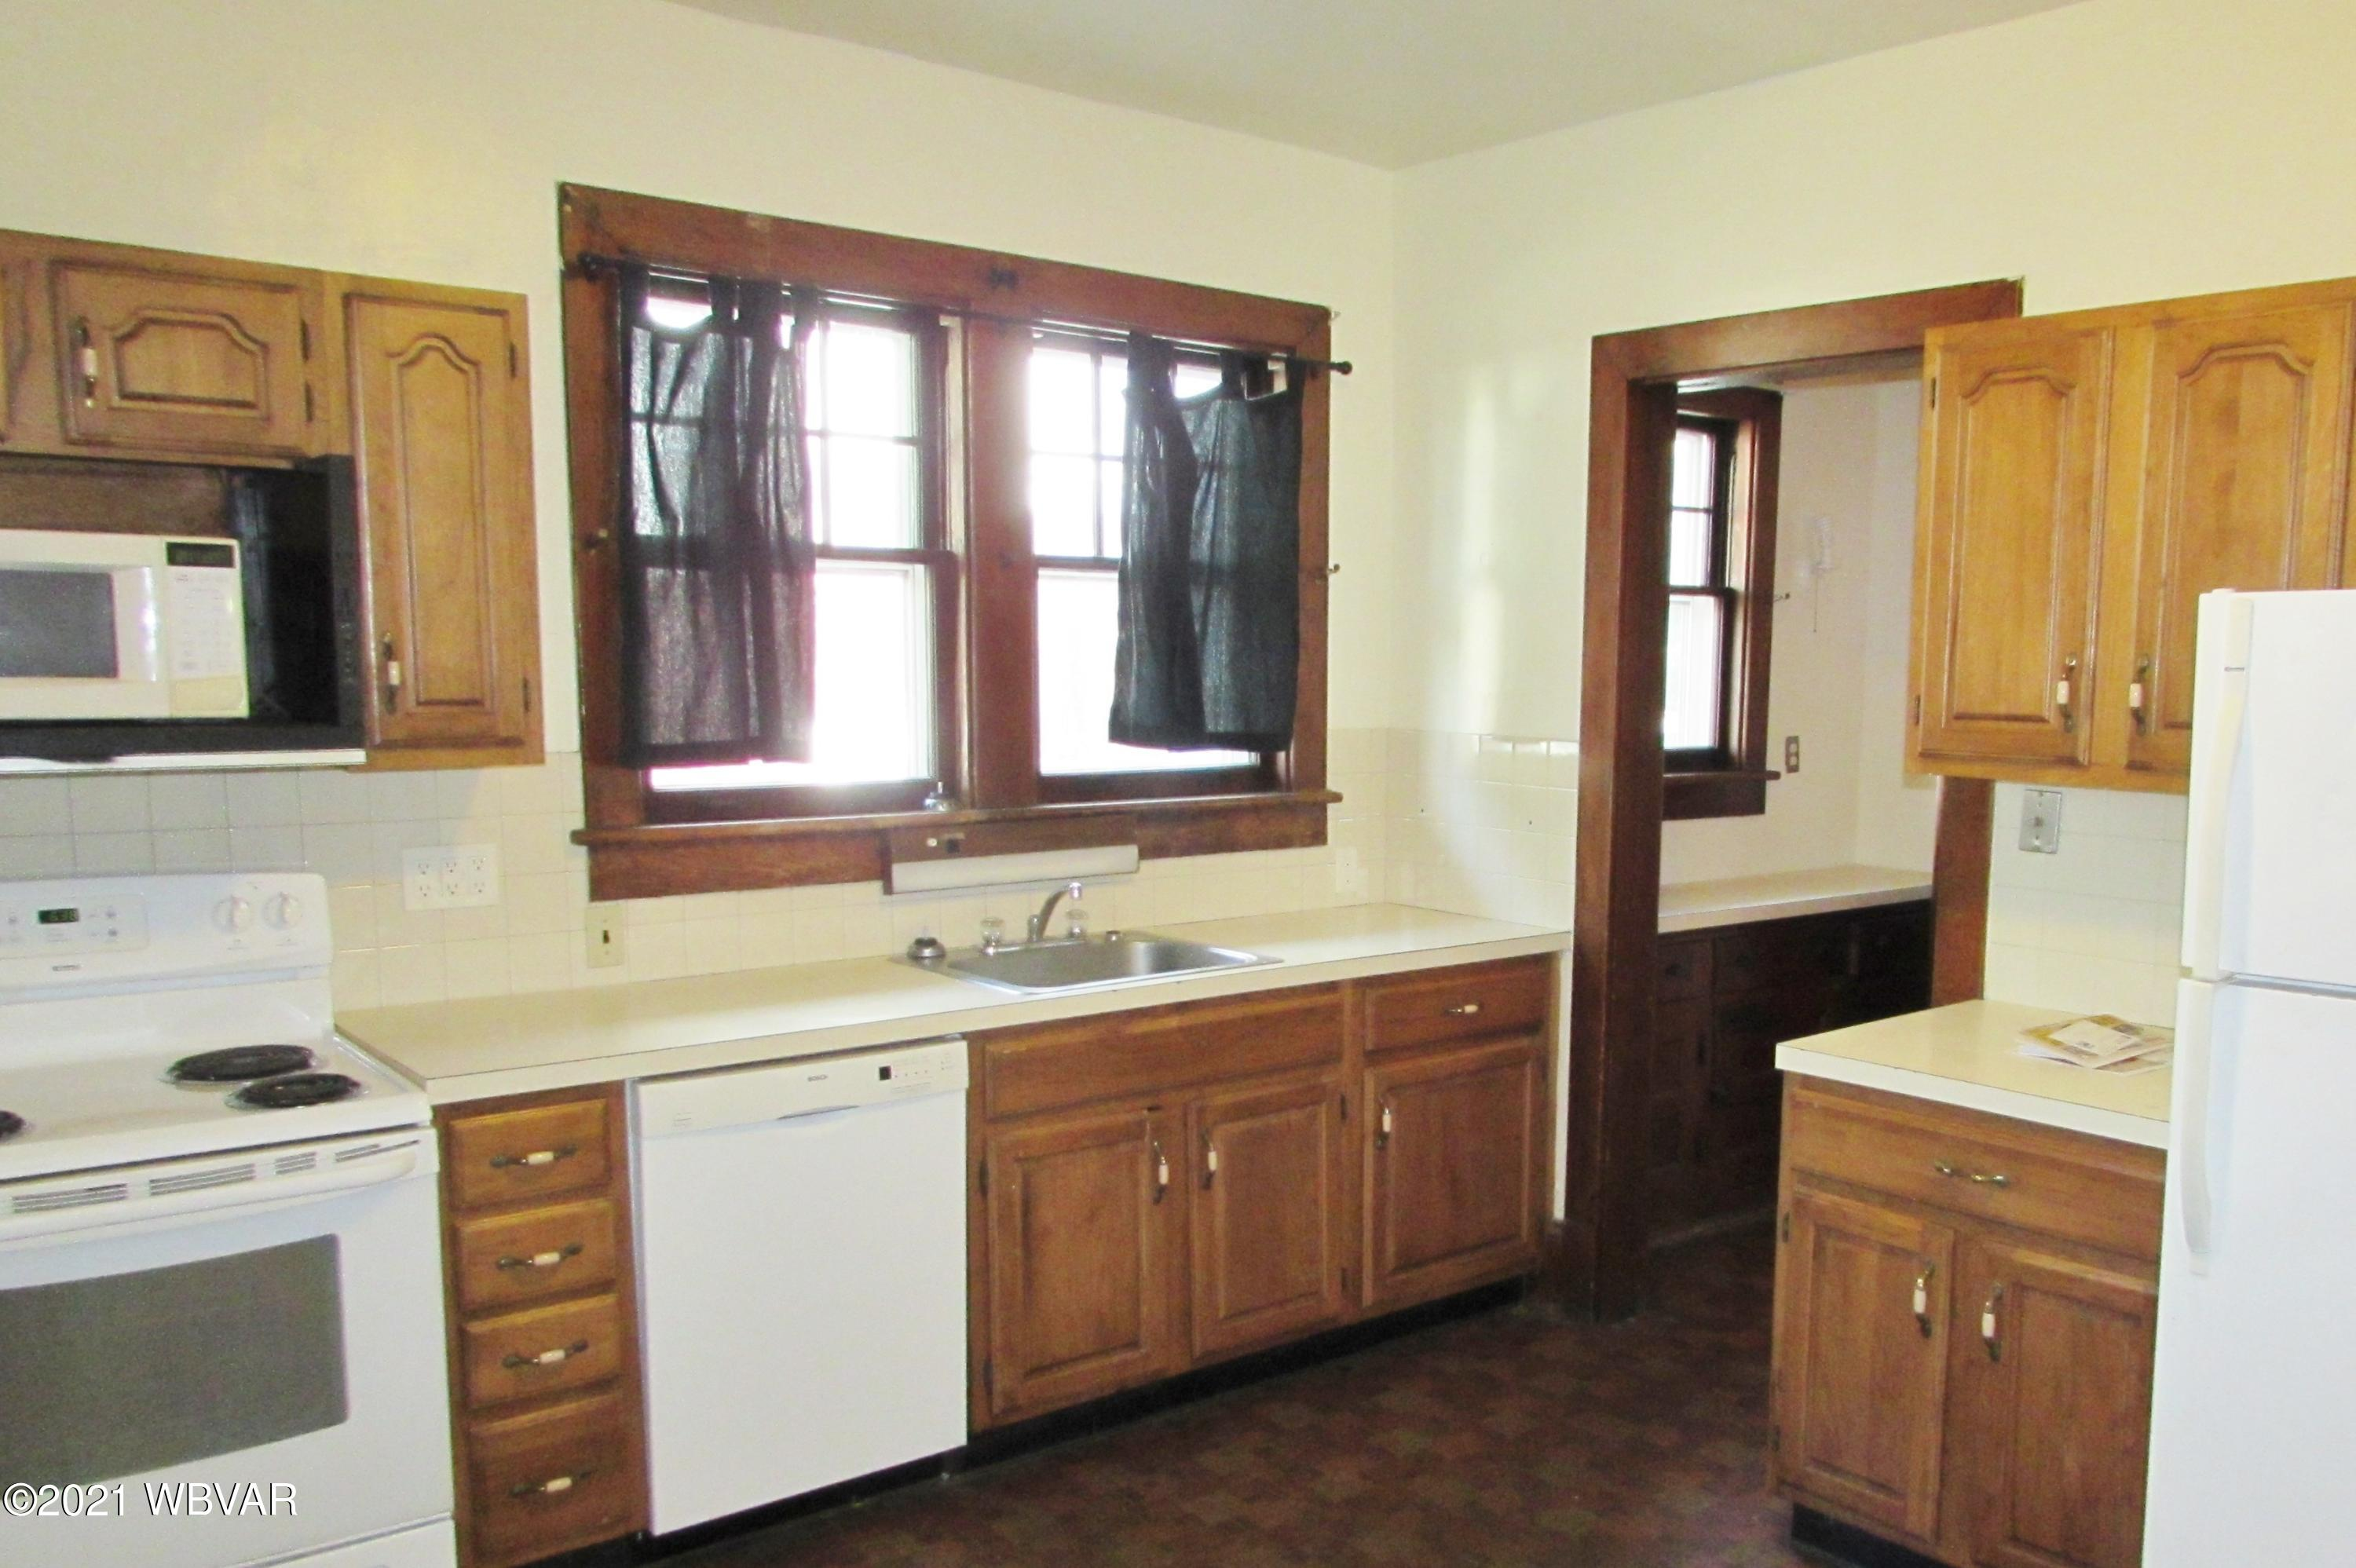 515 MAIN STREET, Lock Haven, PA 17745, 5 Bedrooms Bedrooms, ,2 BathroomsBathrooms,Residential,For sale,MAIN,WB-92239